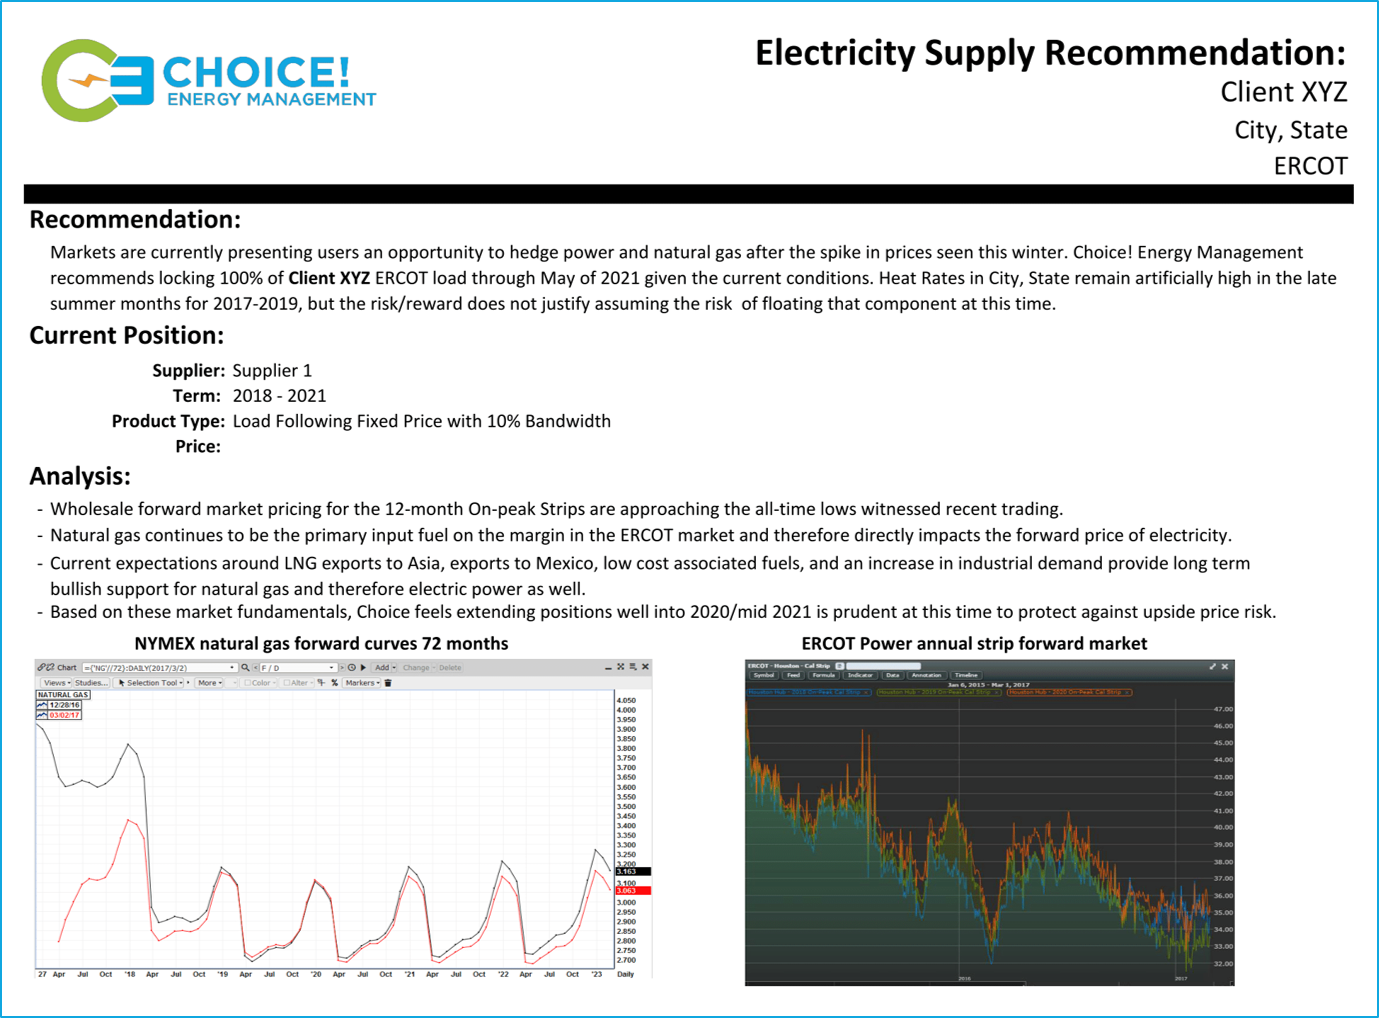 Strategic Procurement | Choice! Energy Management